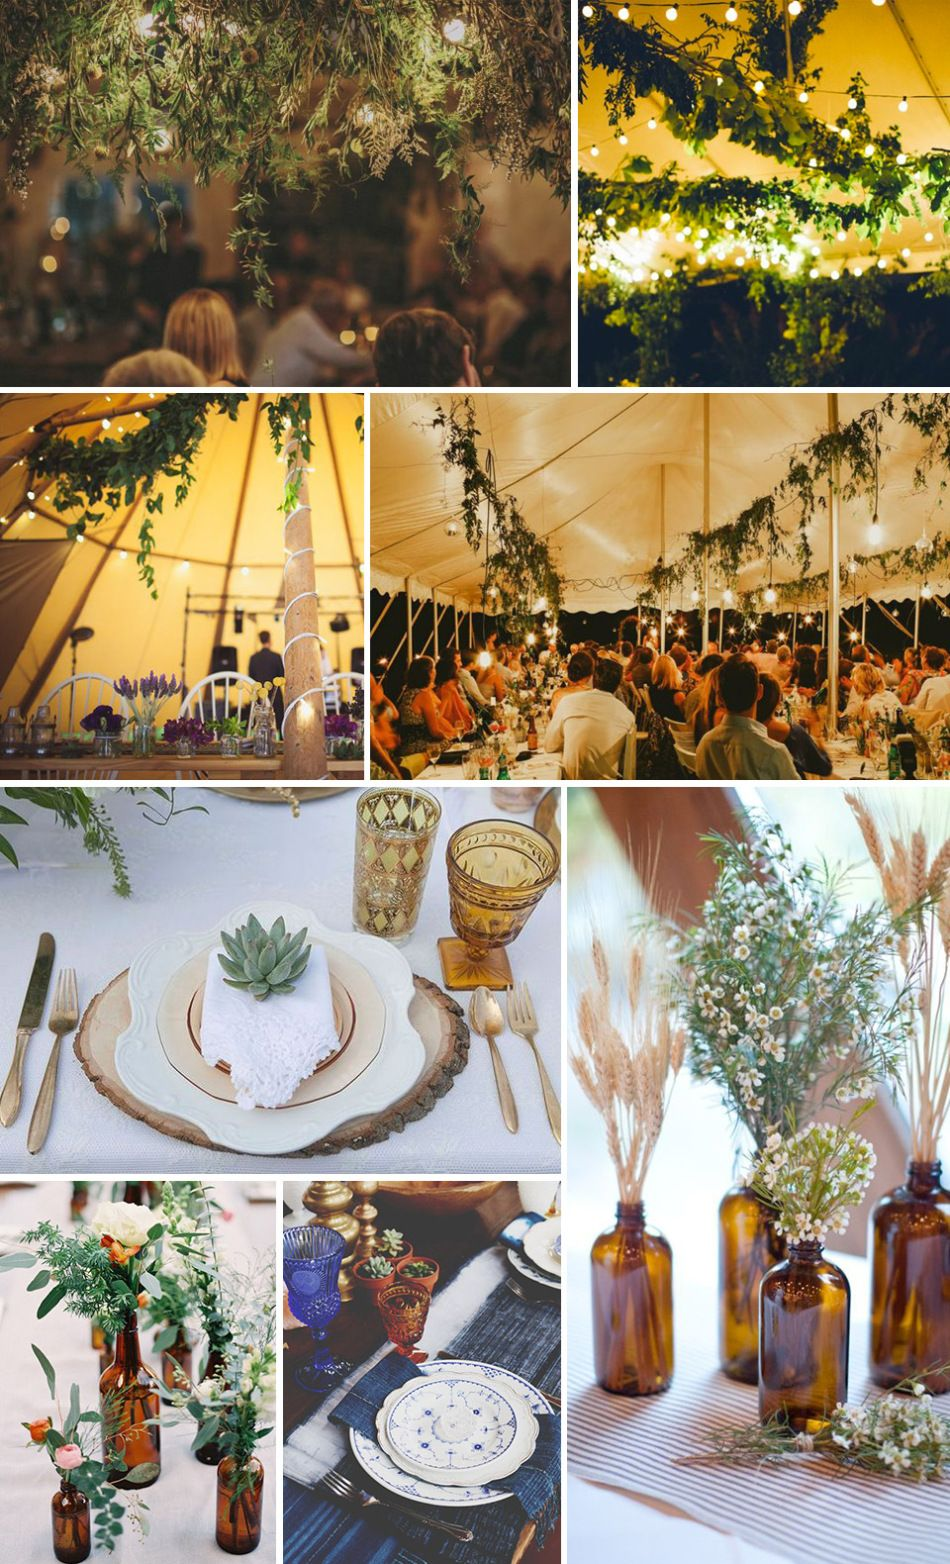 Bridal inspiration board the ultimate boho and free spirited